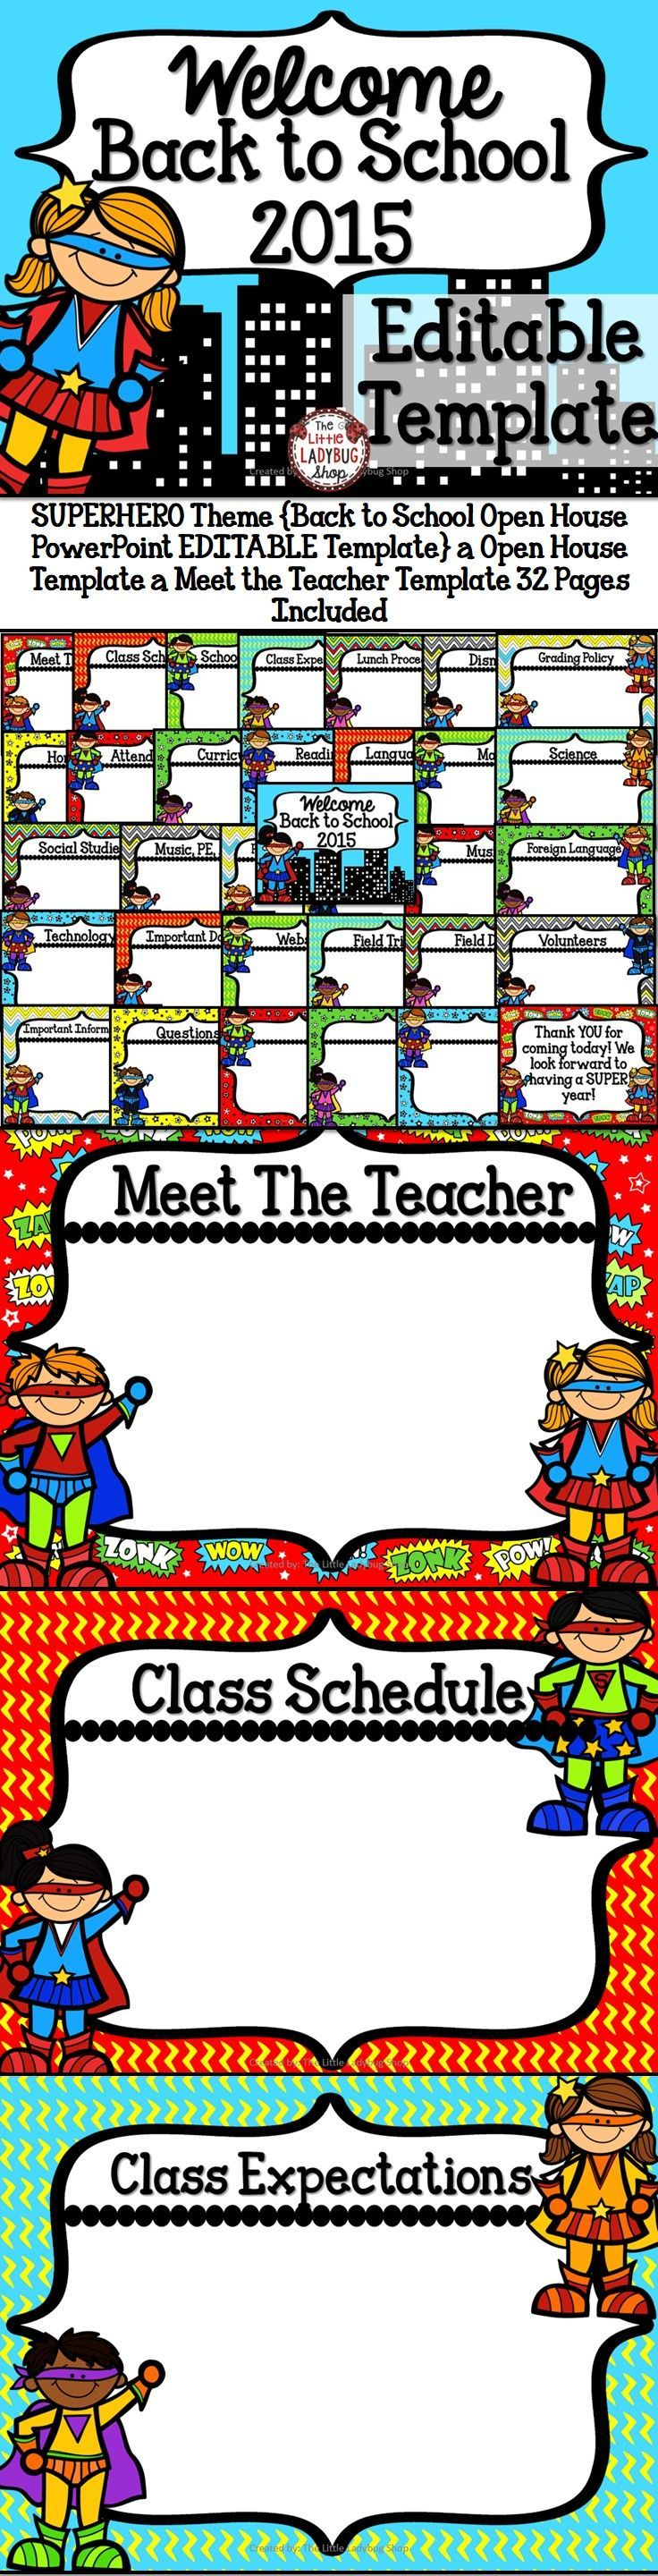 SUPERHERO Theme {Back to School Open House PowerPoint EDITABLE Template} | Open House Template | Meet the Teacher Template